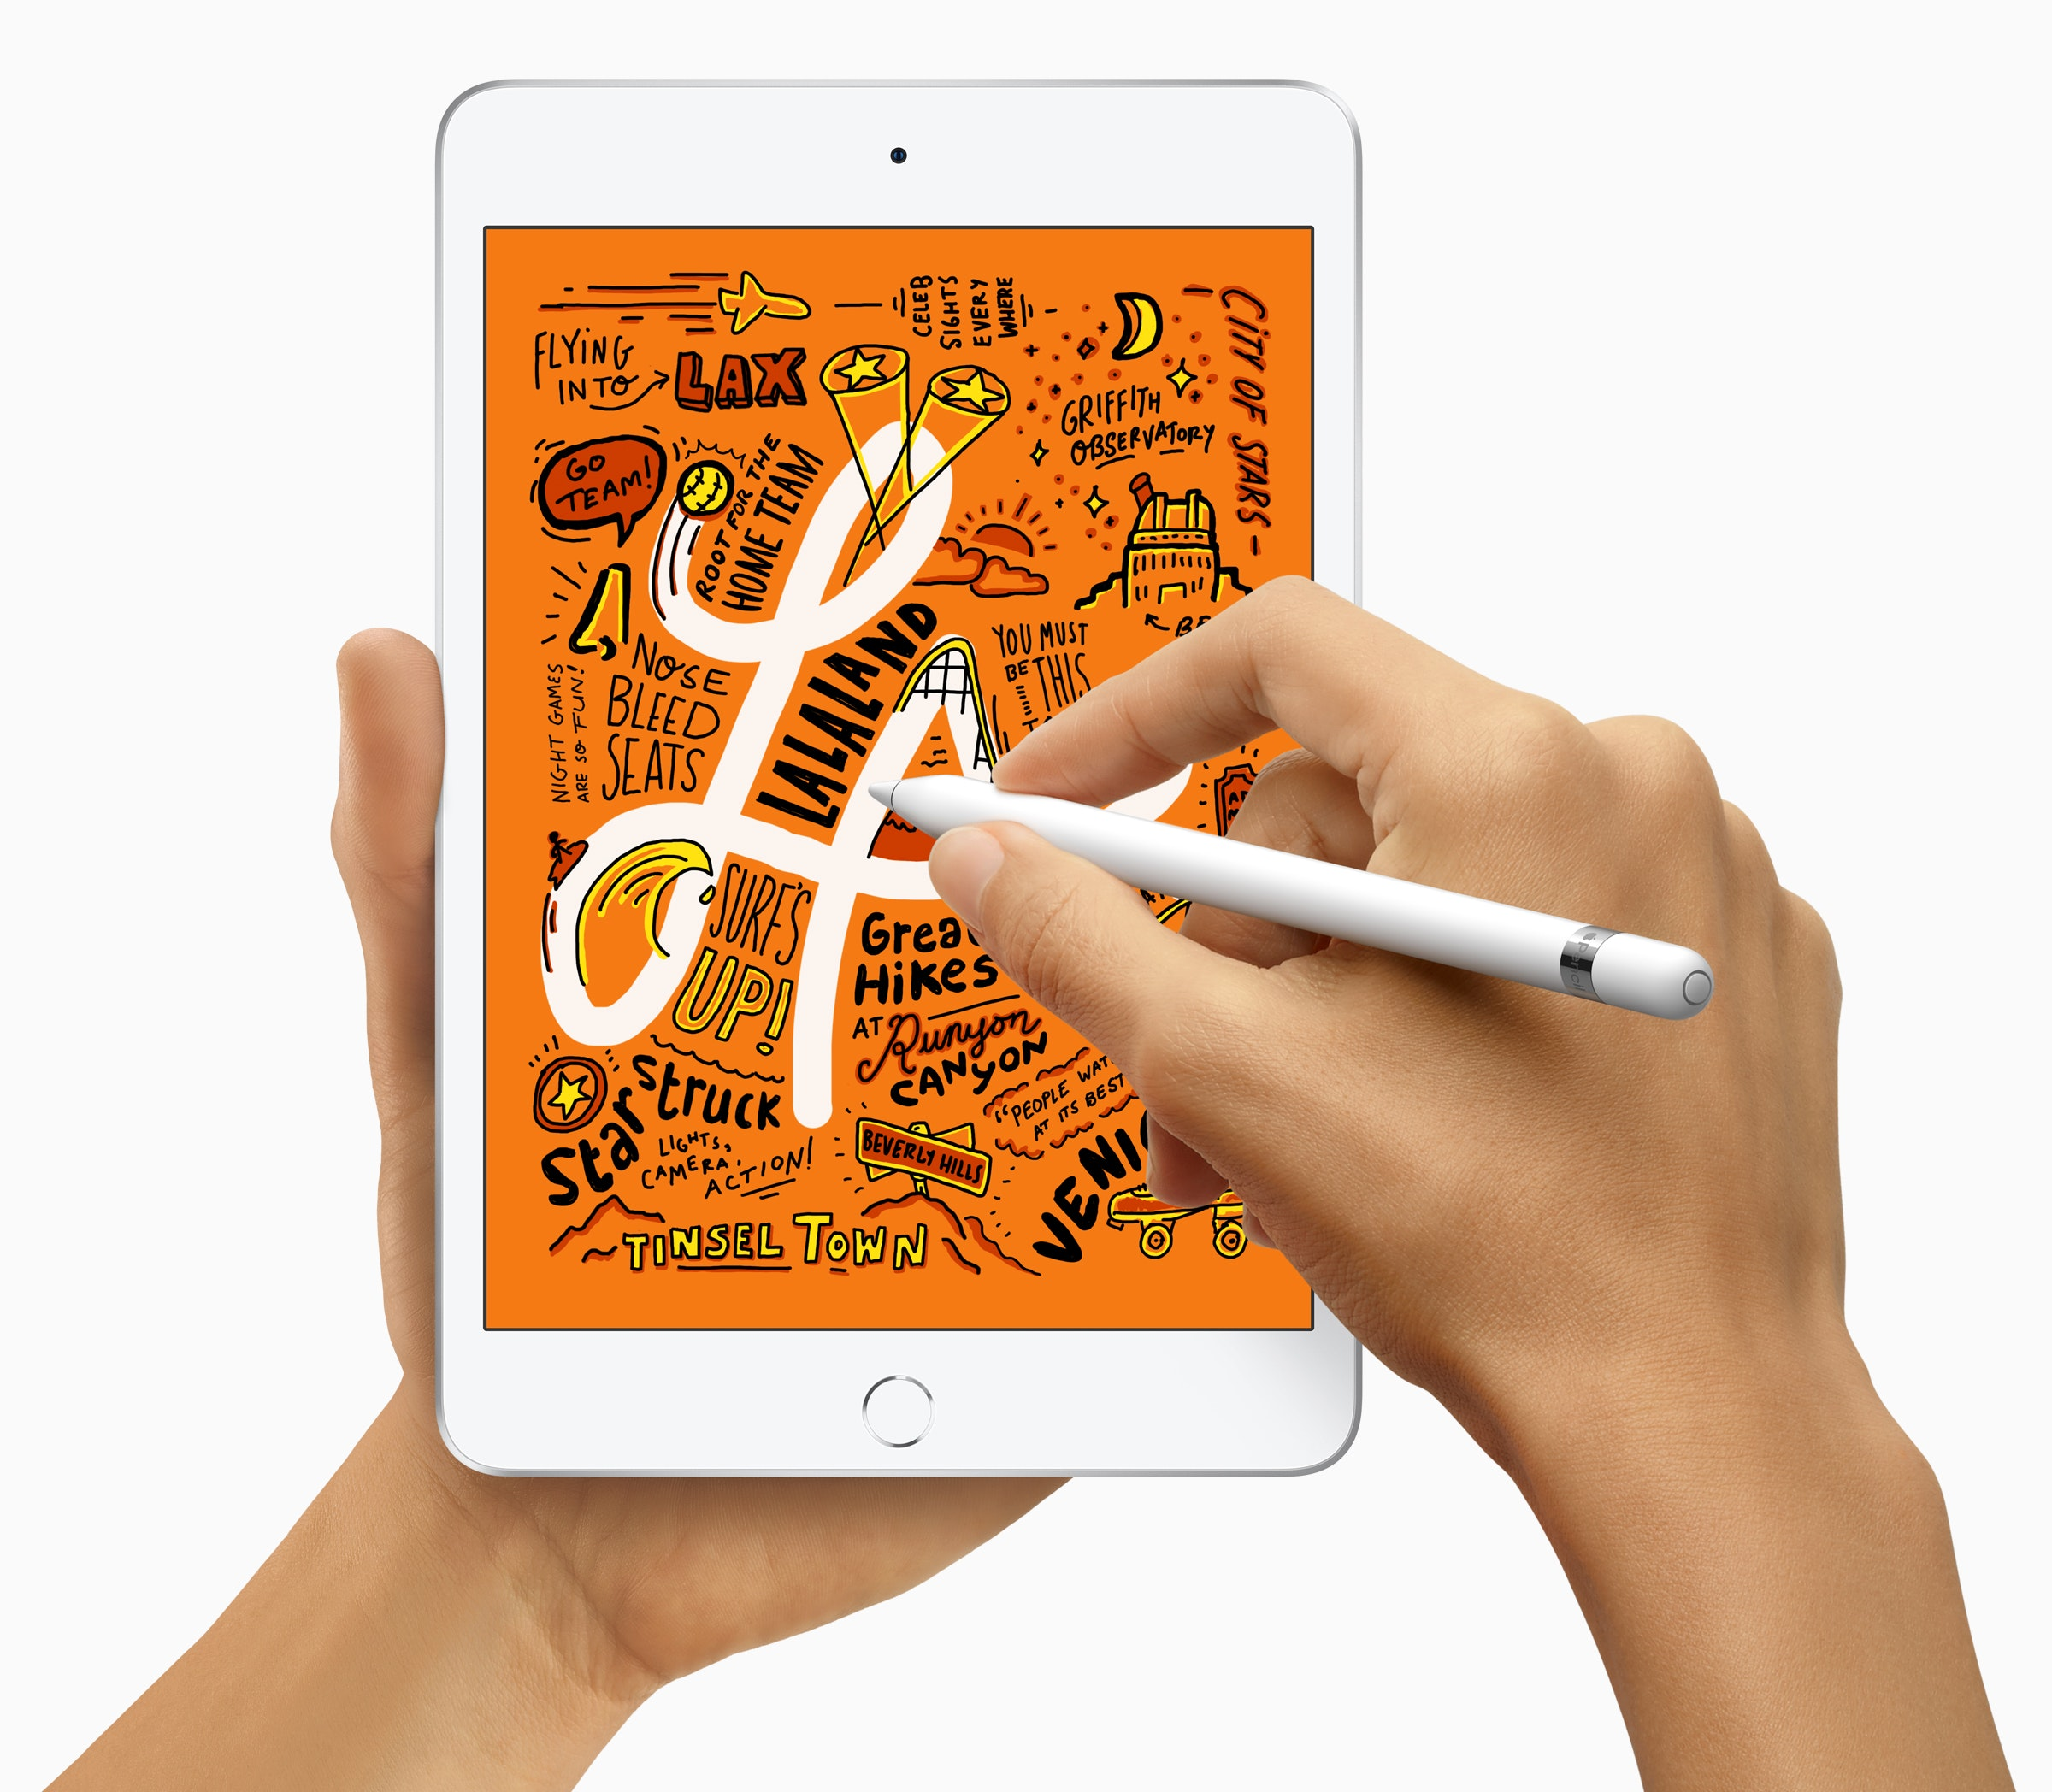 New iPad Mini and iPad Air: Apple Pencil Support Gives Big Boost to Artists